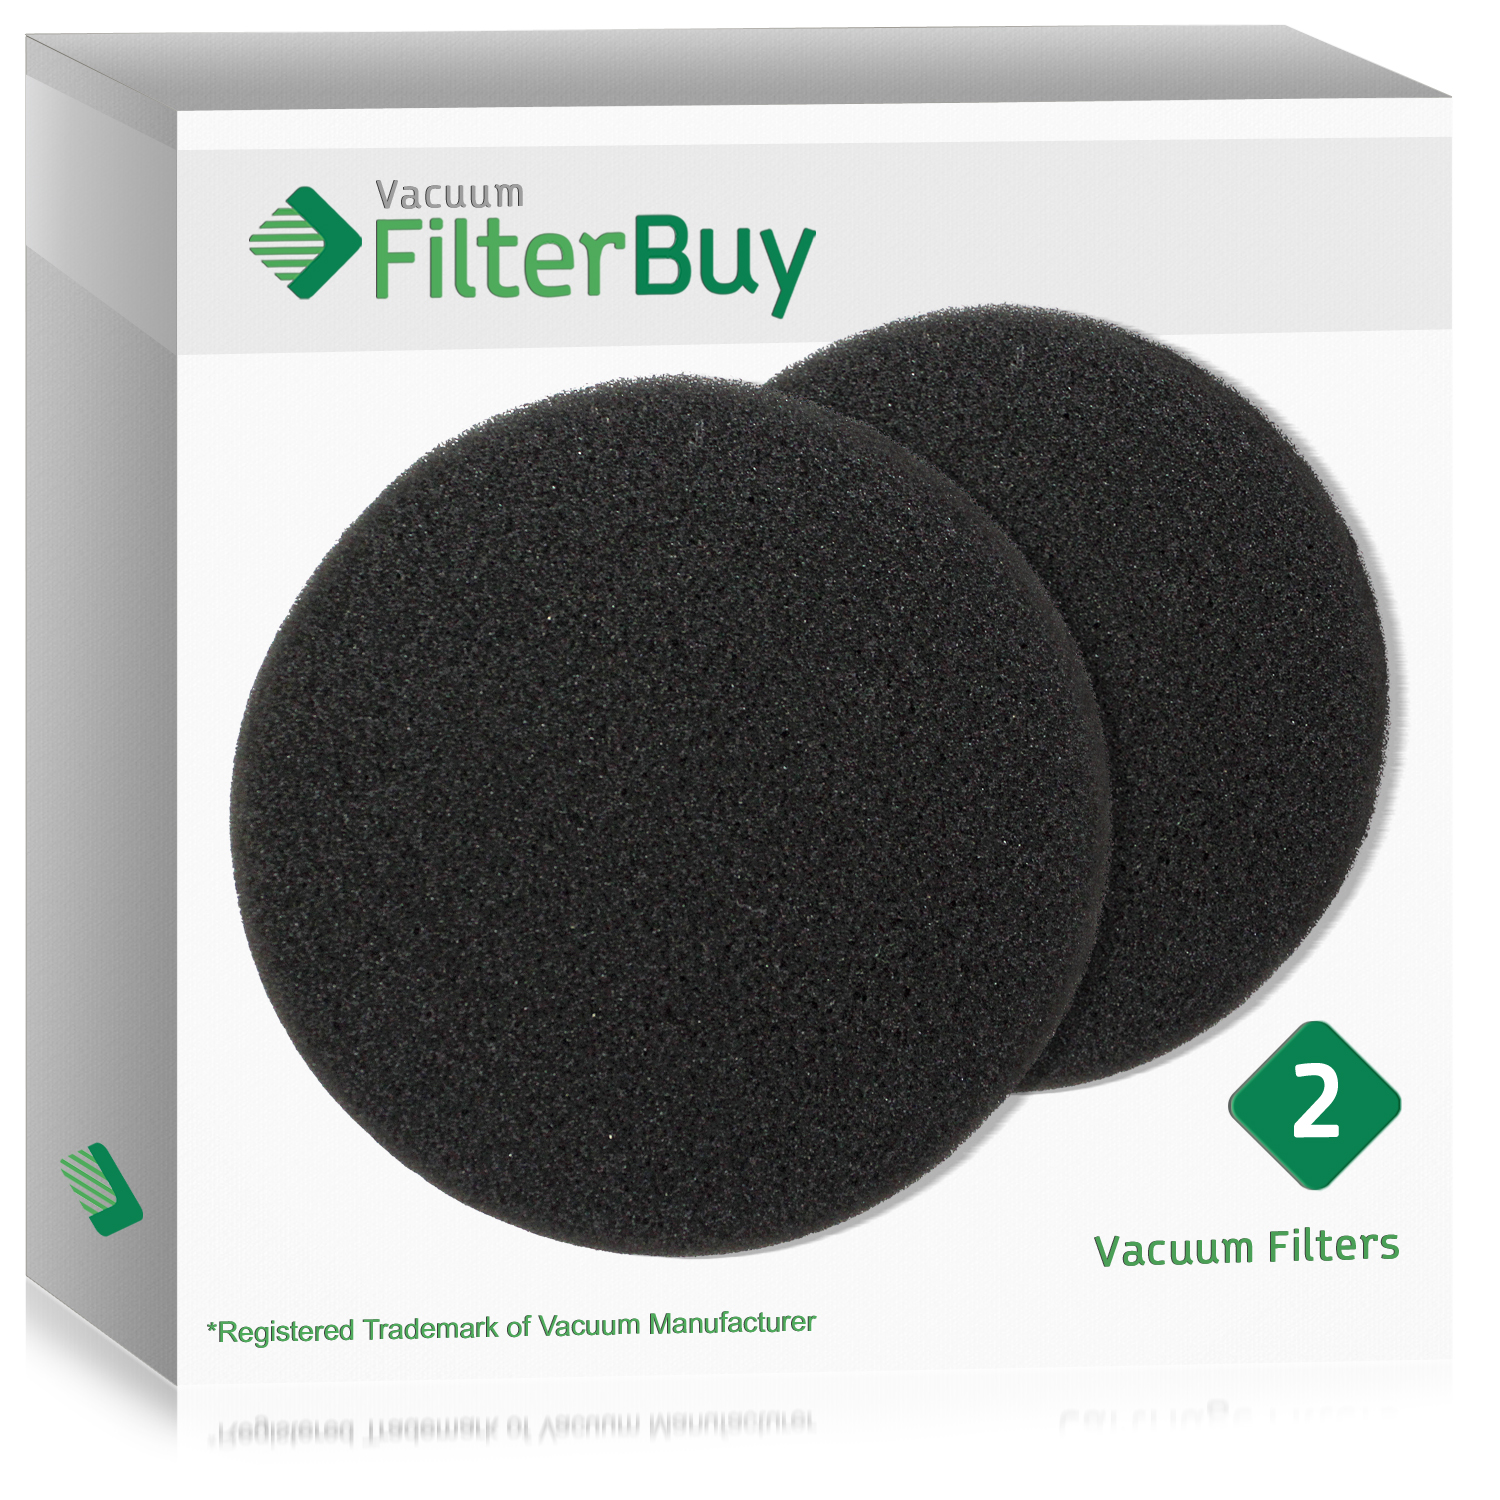 2 - Eureka DCF-26 (DCF26) Filters, Part # 68465a & 68465.  Designed by FilterBuy to fit Eureka AirSpeed Upright Vacuum Cleaners.